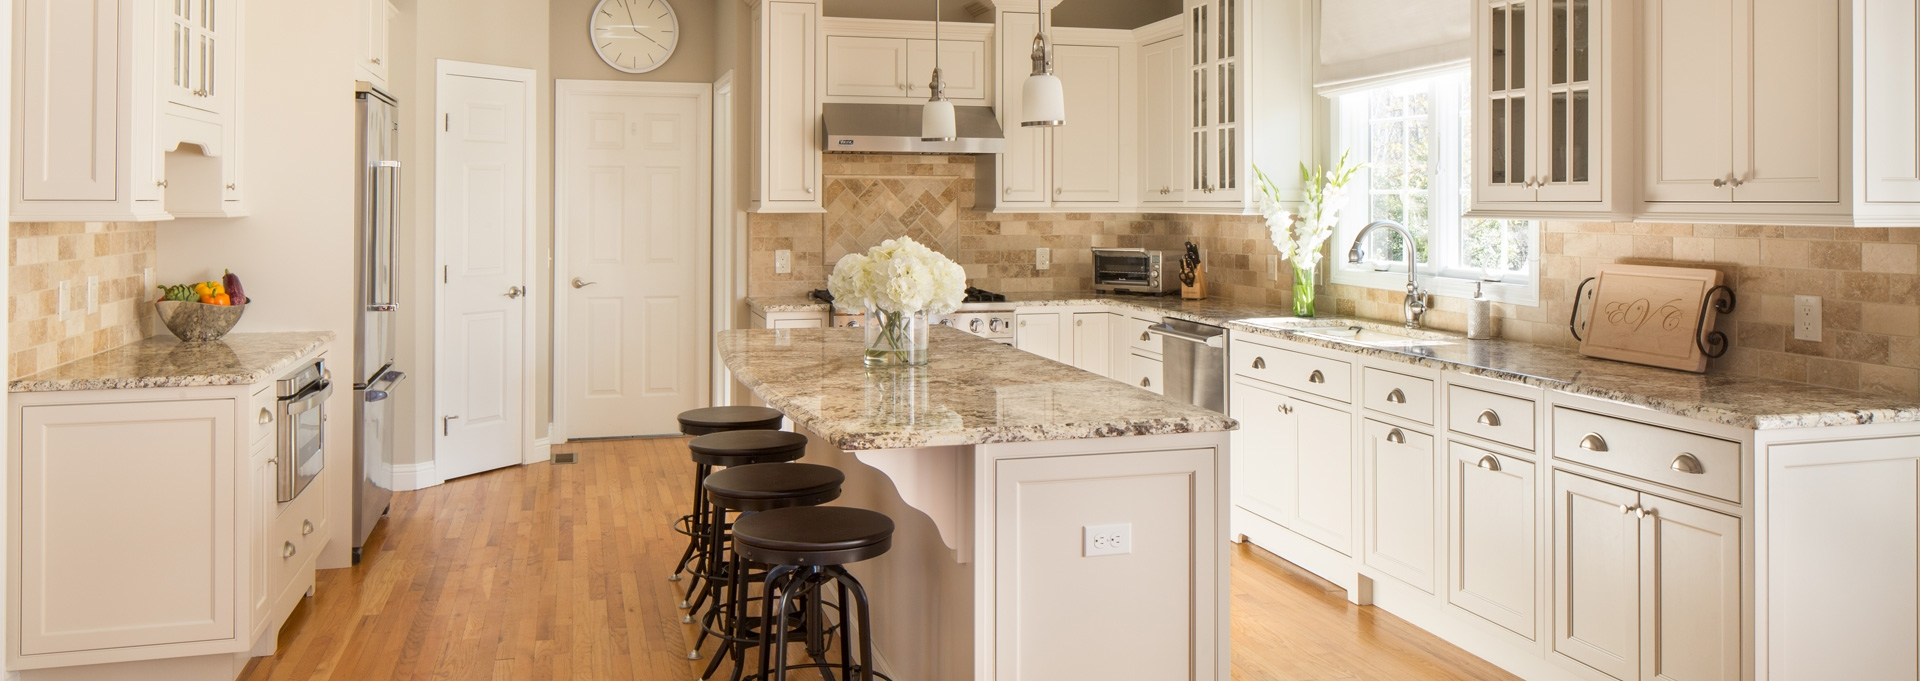 kitchen bath gallery design showrooms remodeling ma ri ct rh kitchenbathgallery com kitchen & bath gallery general trading llc kitchen & bath gallery